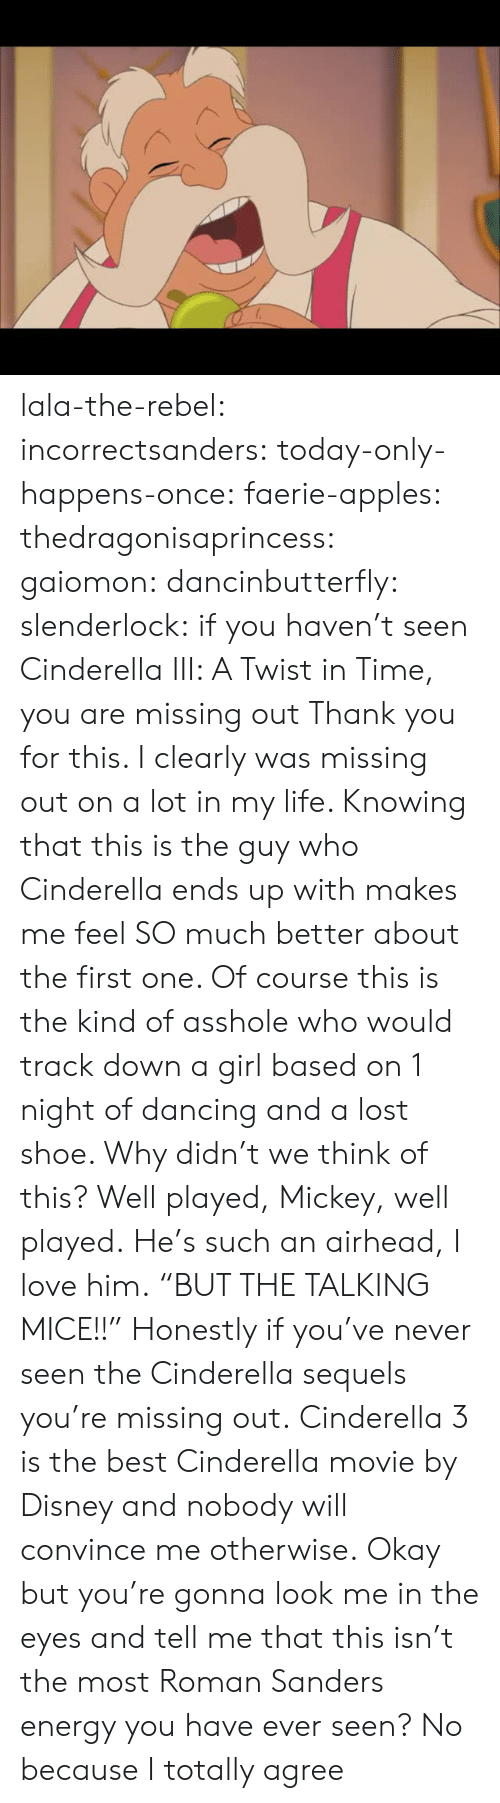 """Cinderella , Dancing, and Disney: lala-the-rebel:  incorrectsanders:   today-only-happens-once:   faerie-apples:  thedragonisaprincess:  gaiomon:  dancinbutterfly:  slenderlock: if you haven't seen Cinderella III: A Twist in Time, you are missing out Thank you for this. I clearly was missing out on a lot in my life. Knowing that this is the guy who Cinderella ends up with makes me feel SO much better about the first one. Of course this is the kind of asshole who would track down a girl based on 1 night of dancing and a lost shoe. Why didn't we think of this? Well played, Mickey, well played.  He's such an airhead, I love him.  """"BUT THE TALKING MICE!!""""  Honestly if you've never seen the Cinderella sequels you're missing out.  Cinderella 3 is the best Cinderella movie by Disney and nobody will convince me otherwise.   Okay but you're gonna look me in the eyes and tell me that this isn't the most Roman Sanders energy you have ever seen?    No because I totally agree"""